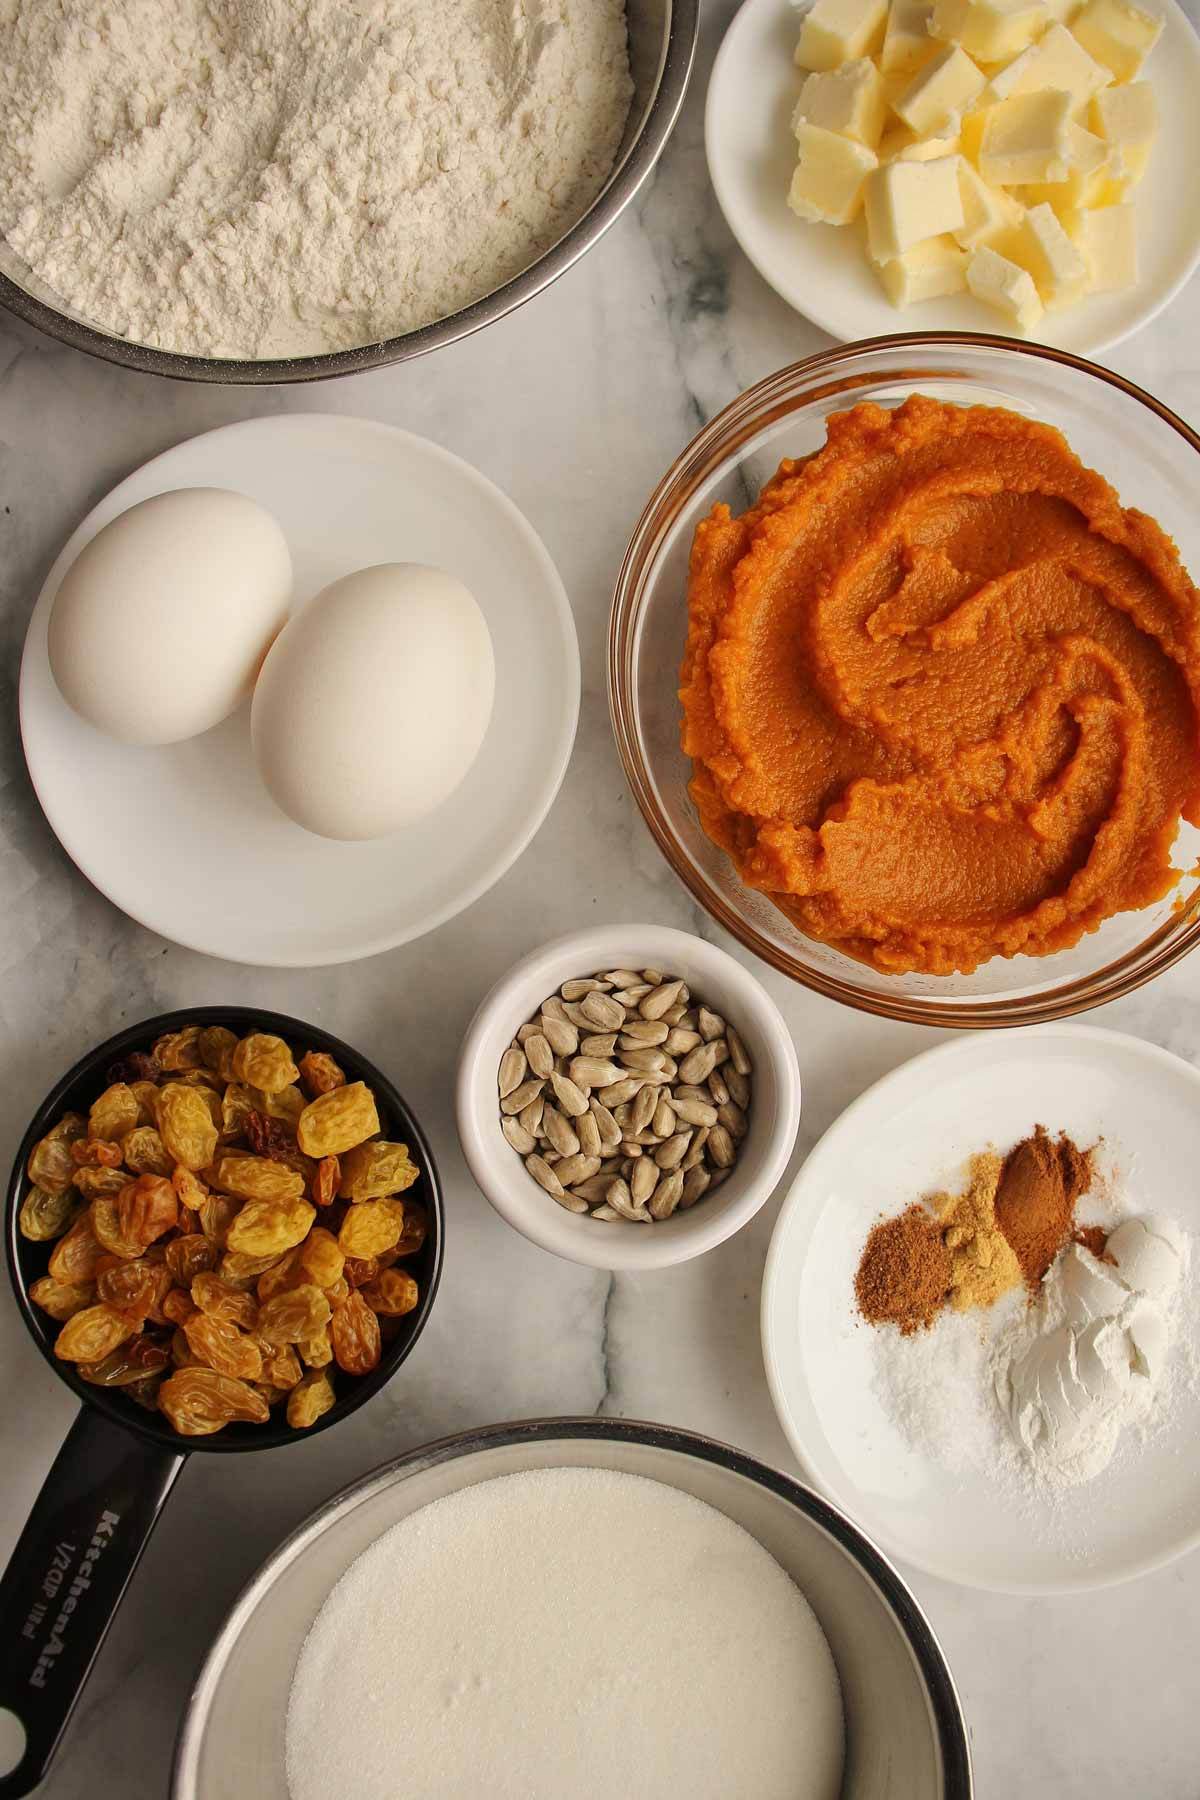 Ingredients for pumpkin raisin muffins including eggs, butter, pumpkin puree, sugar, flour, and spices.